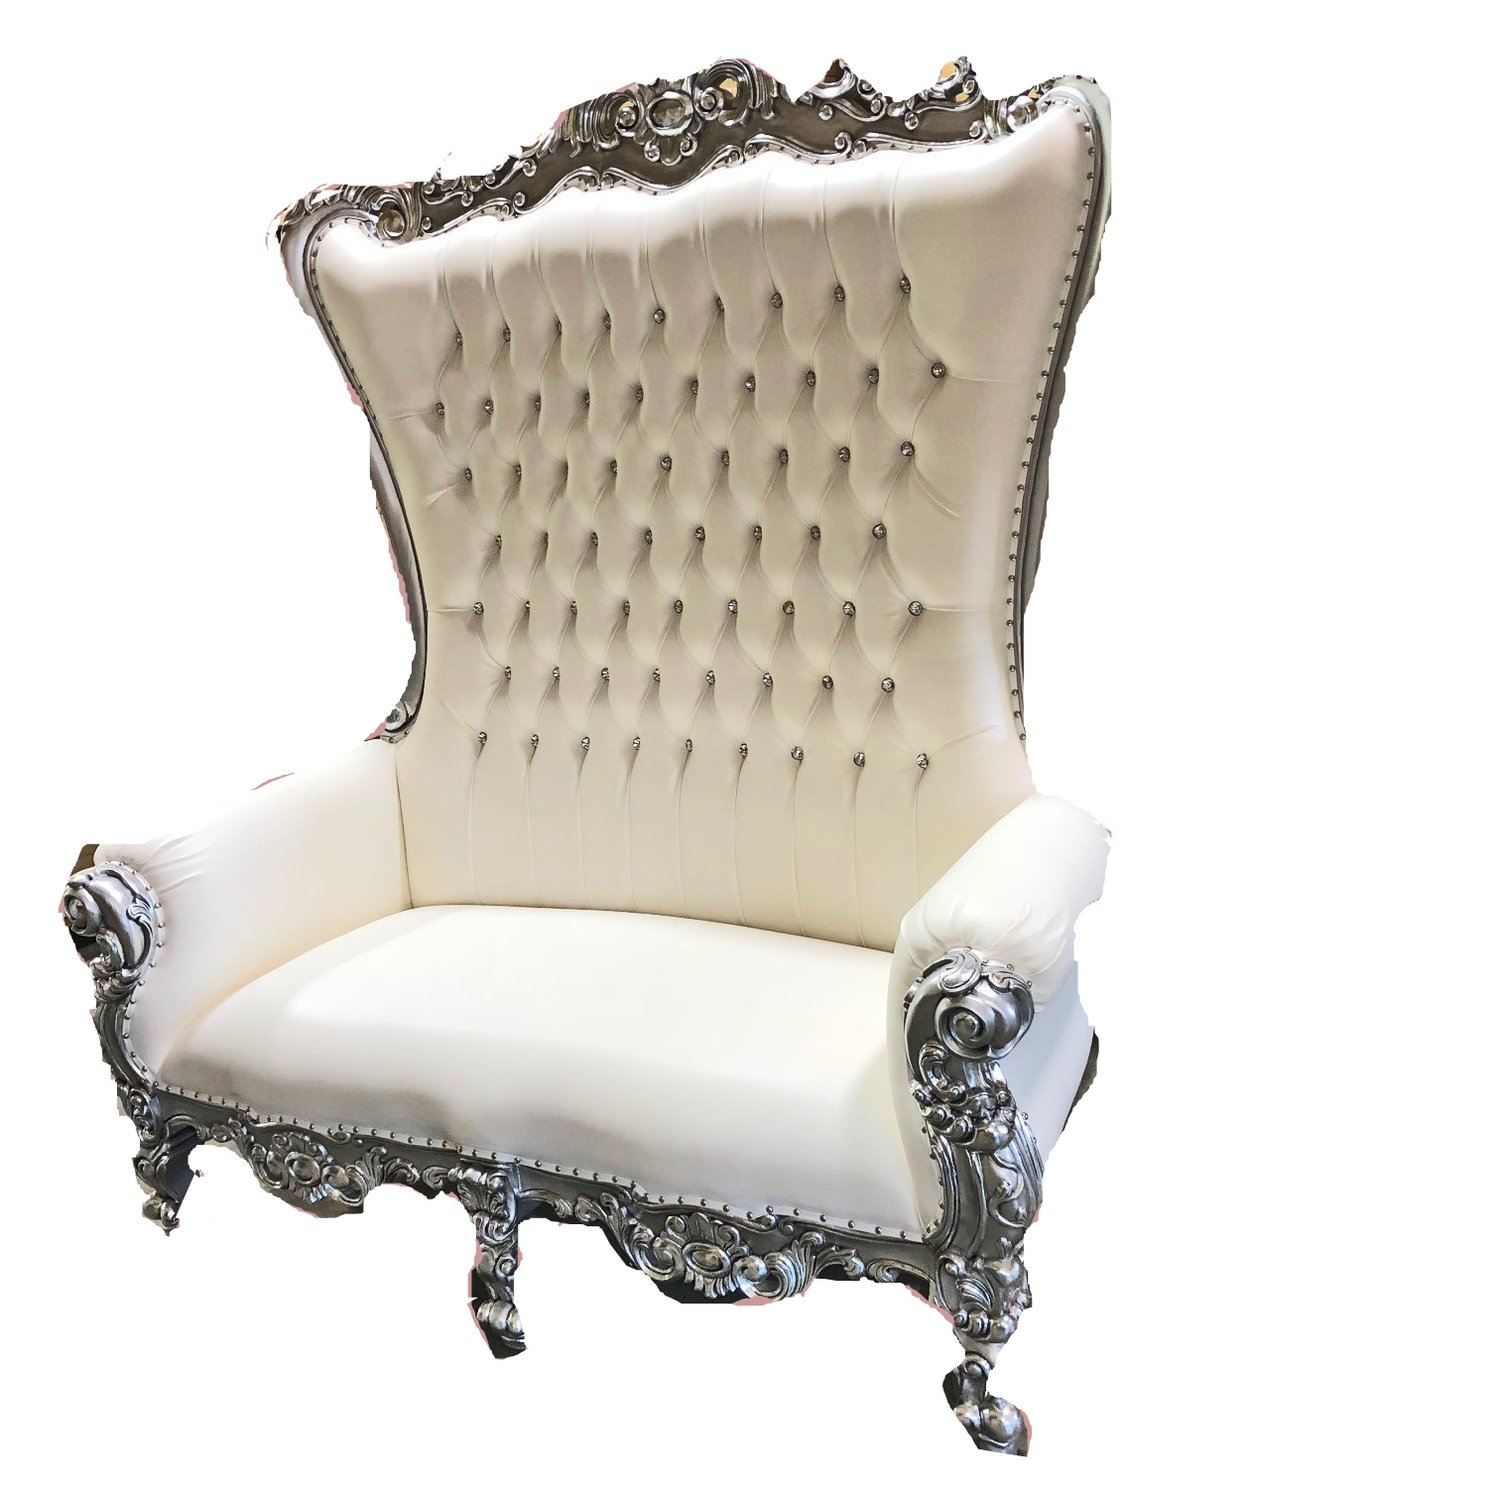 High Back Queen Throne Loveseat - White & Silver